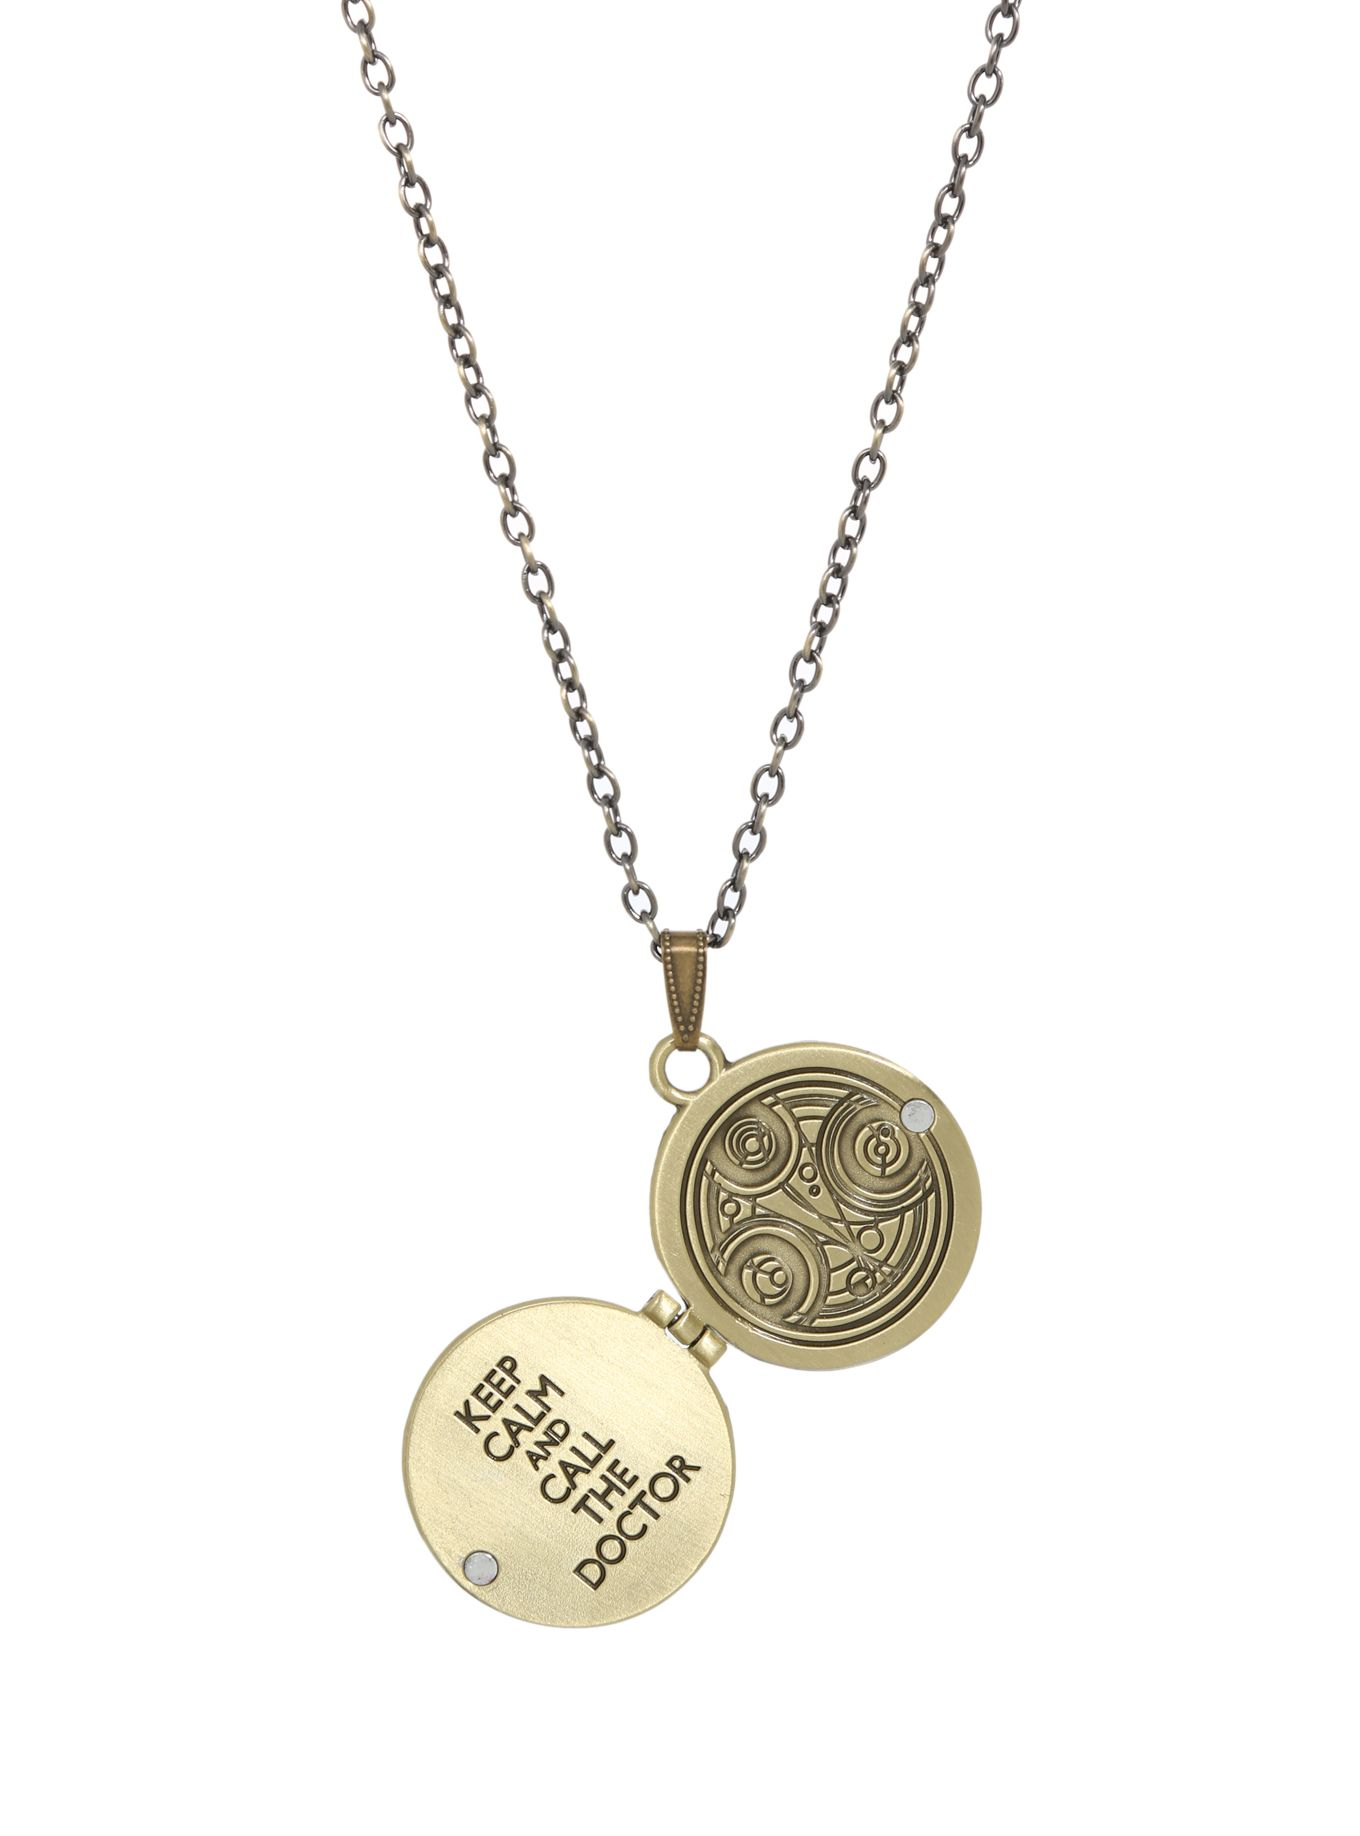 Doctor Who Gallifreyan Locket Necklace | Doctor Who - photo#43